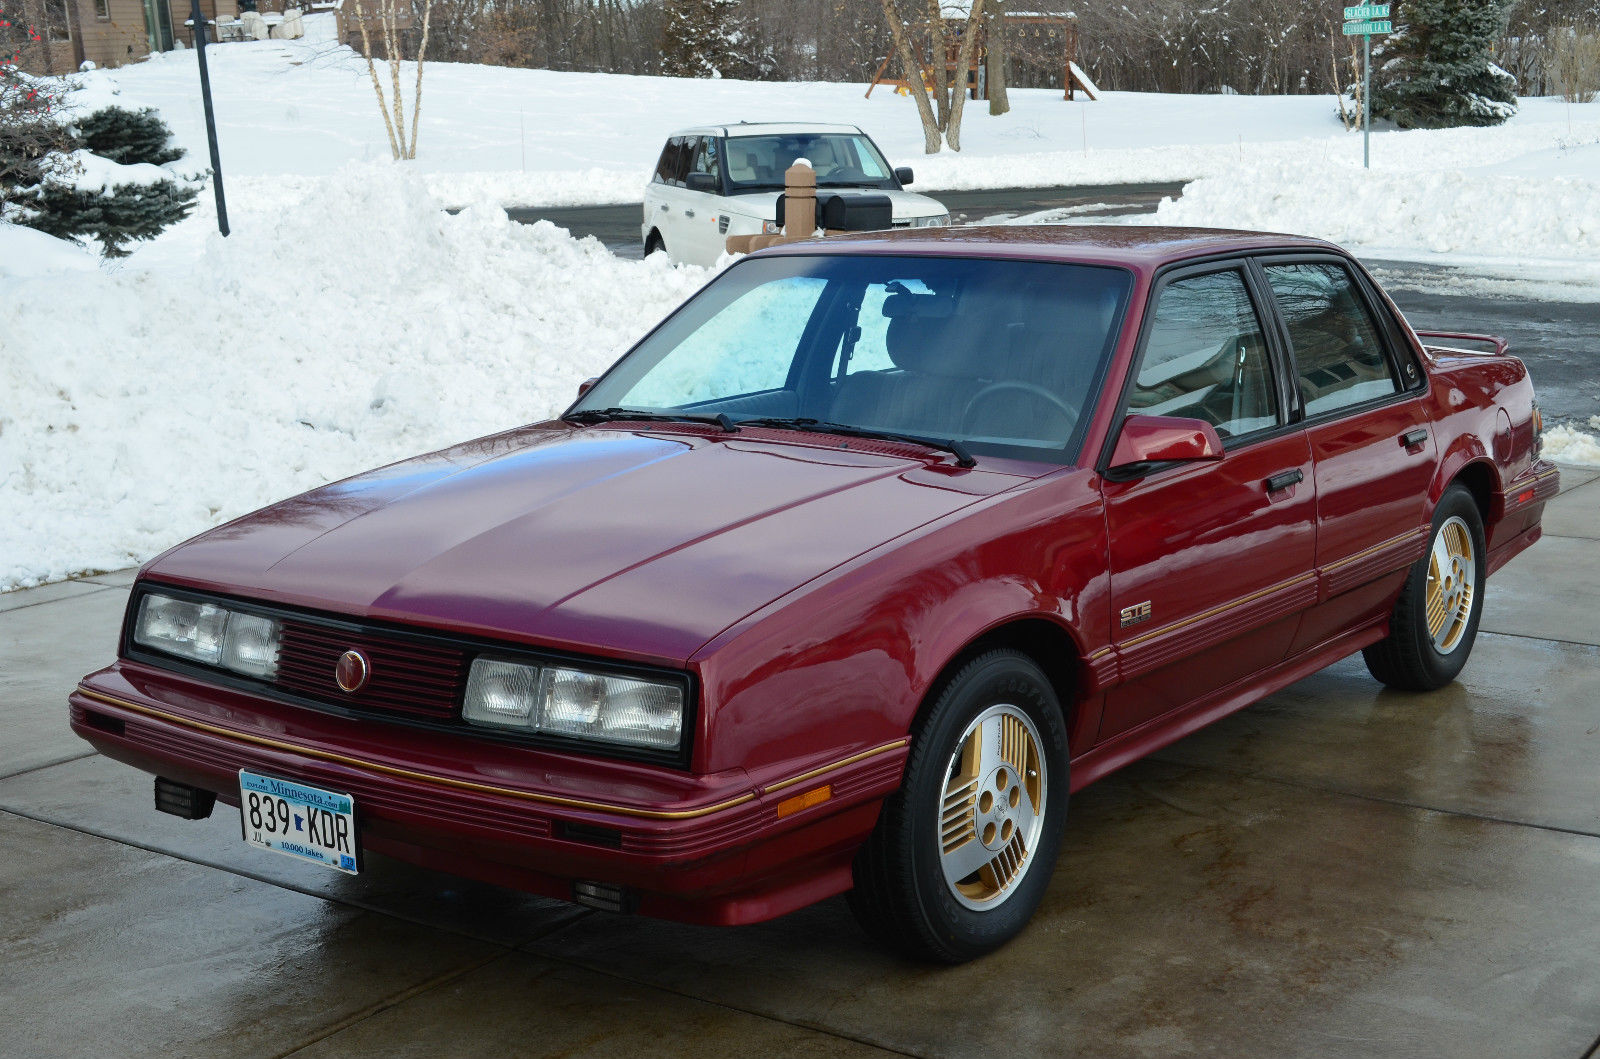 Four Wheel Drive Sedan : Pontiac ste all wheel drive awd sedan door